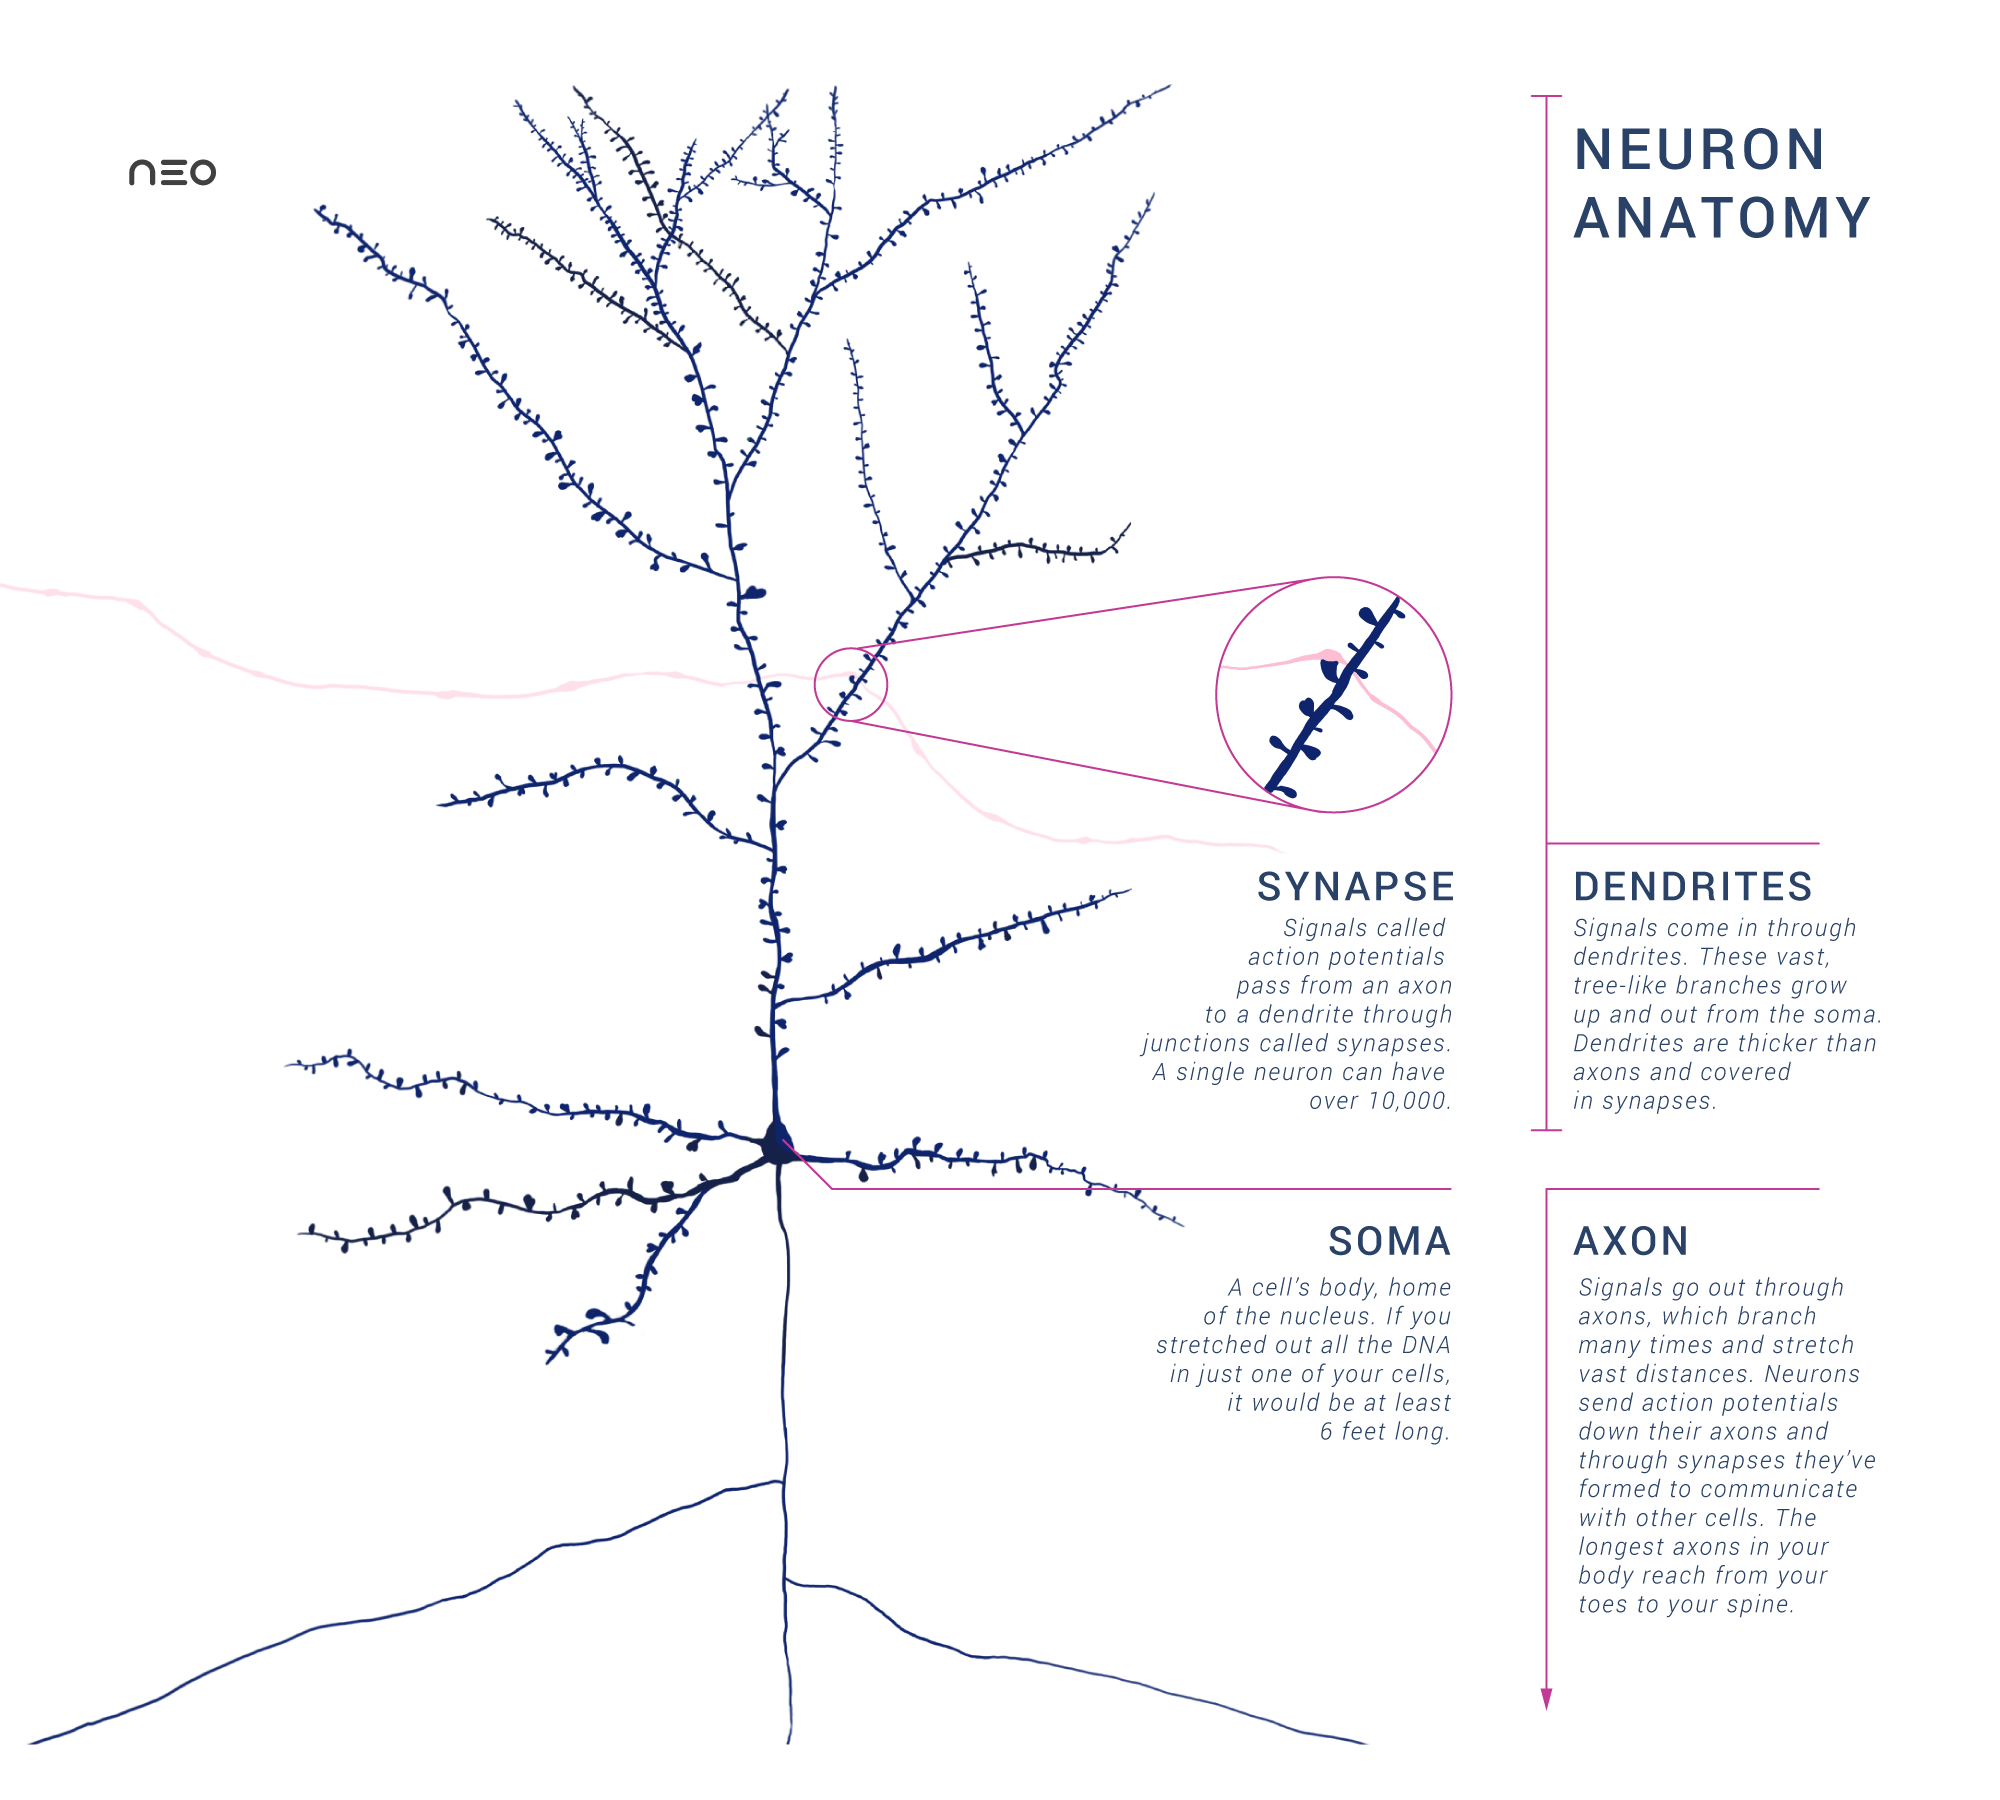 File:Anatomy of a Neuron with Synapse.png - Wikimedia Commons